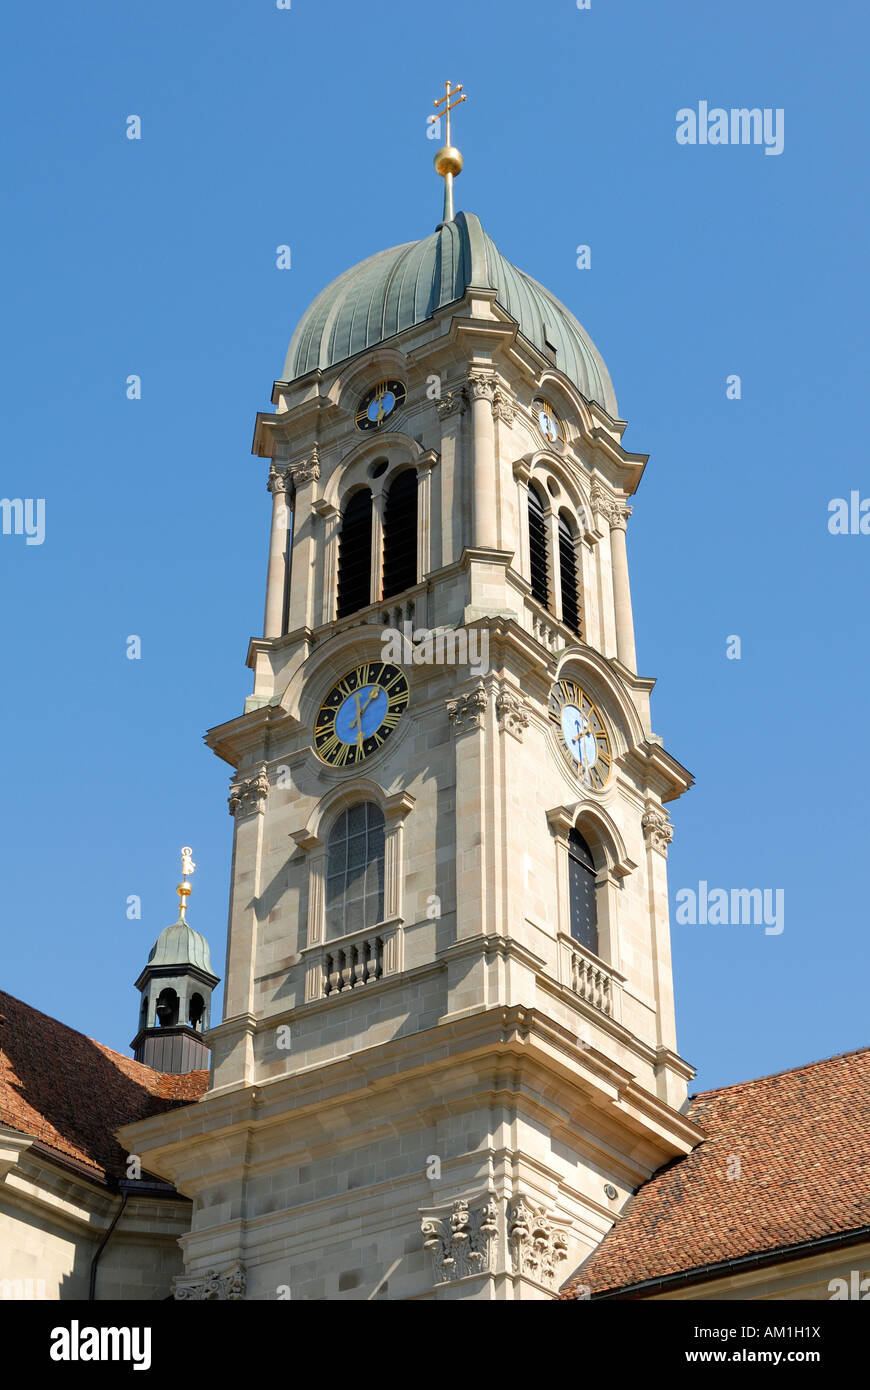 Einsiedeln - the clocktower from the cathedral - Switzerland, Europe. - Stock Image